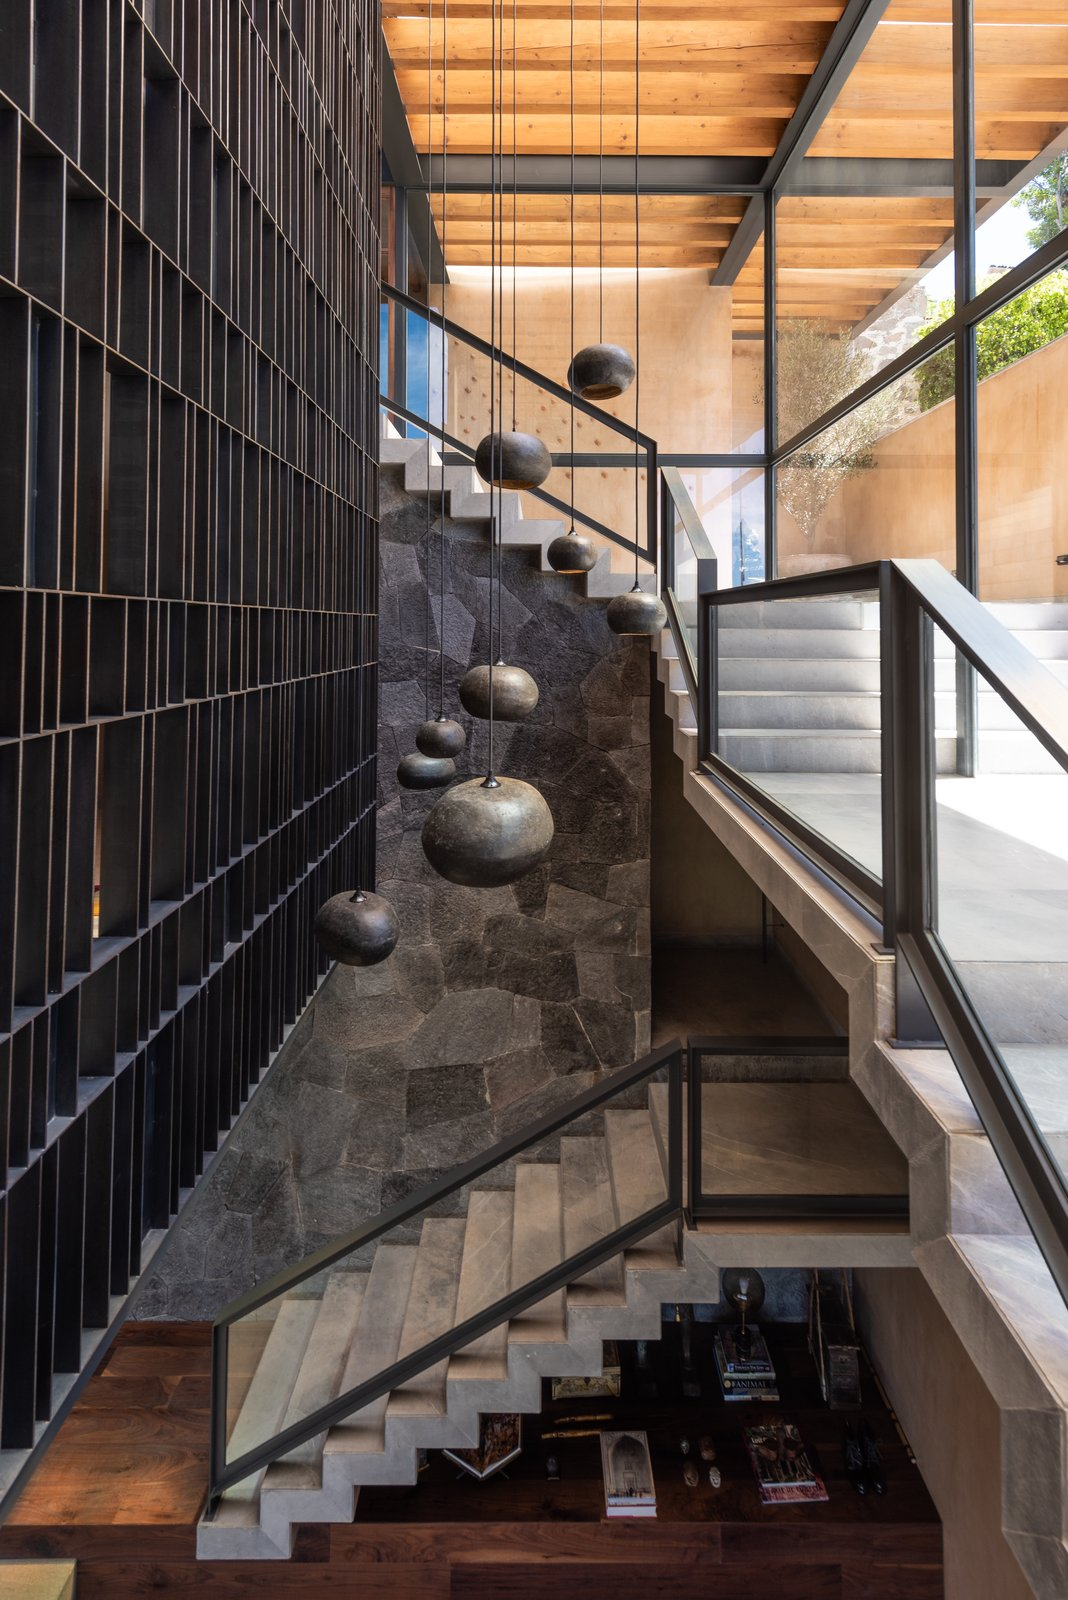 Photo 6 of 6 in Top 5 Homes of the Week With Captivating Staircases from Lago House